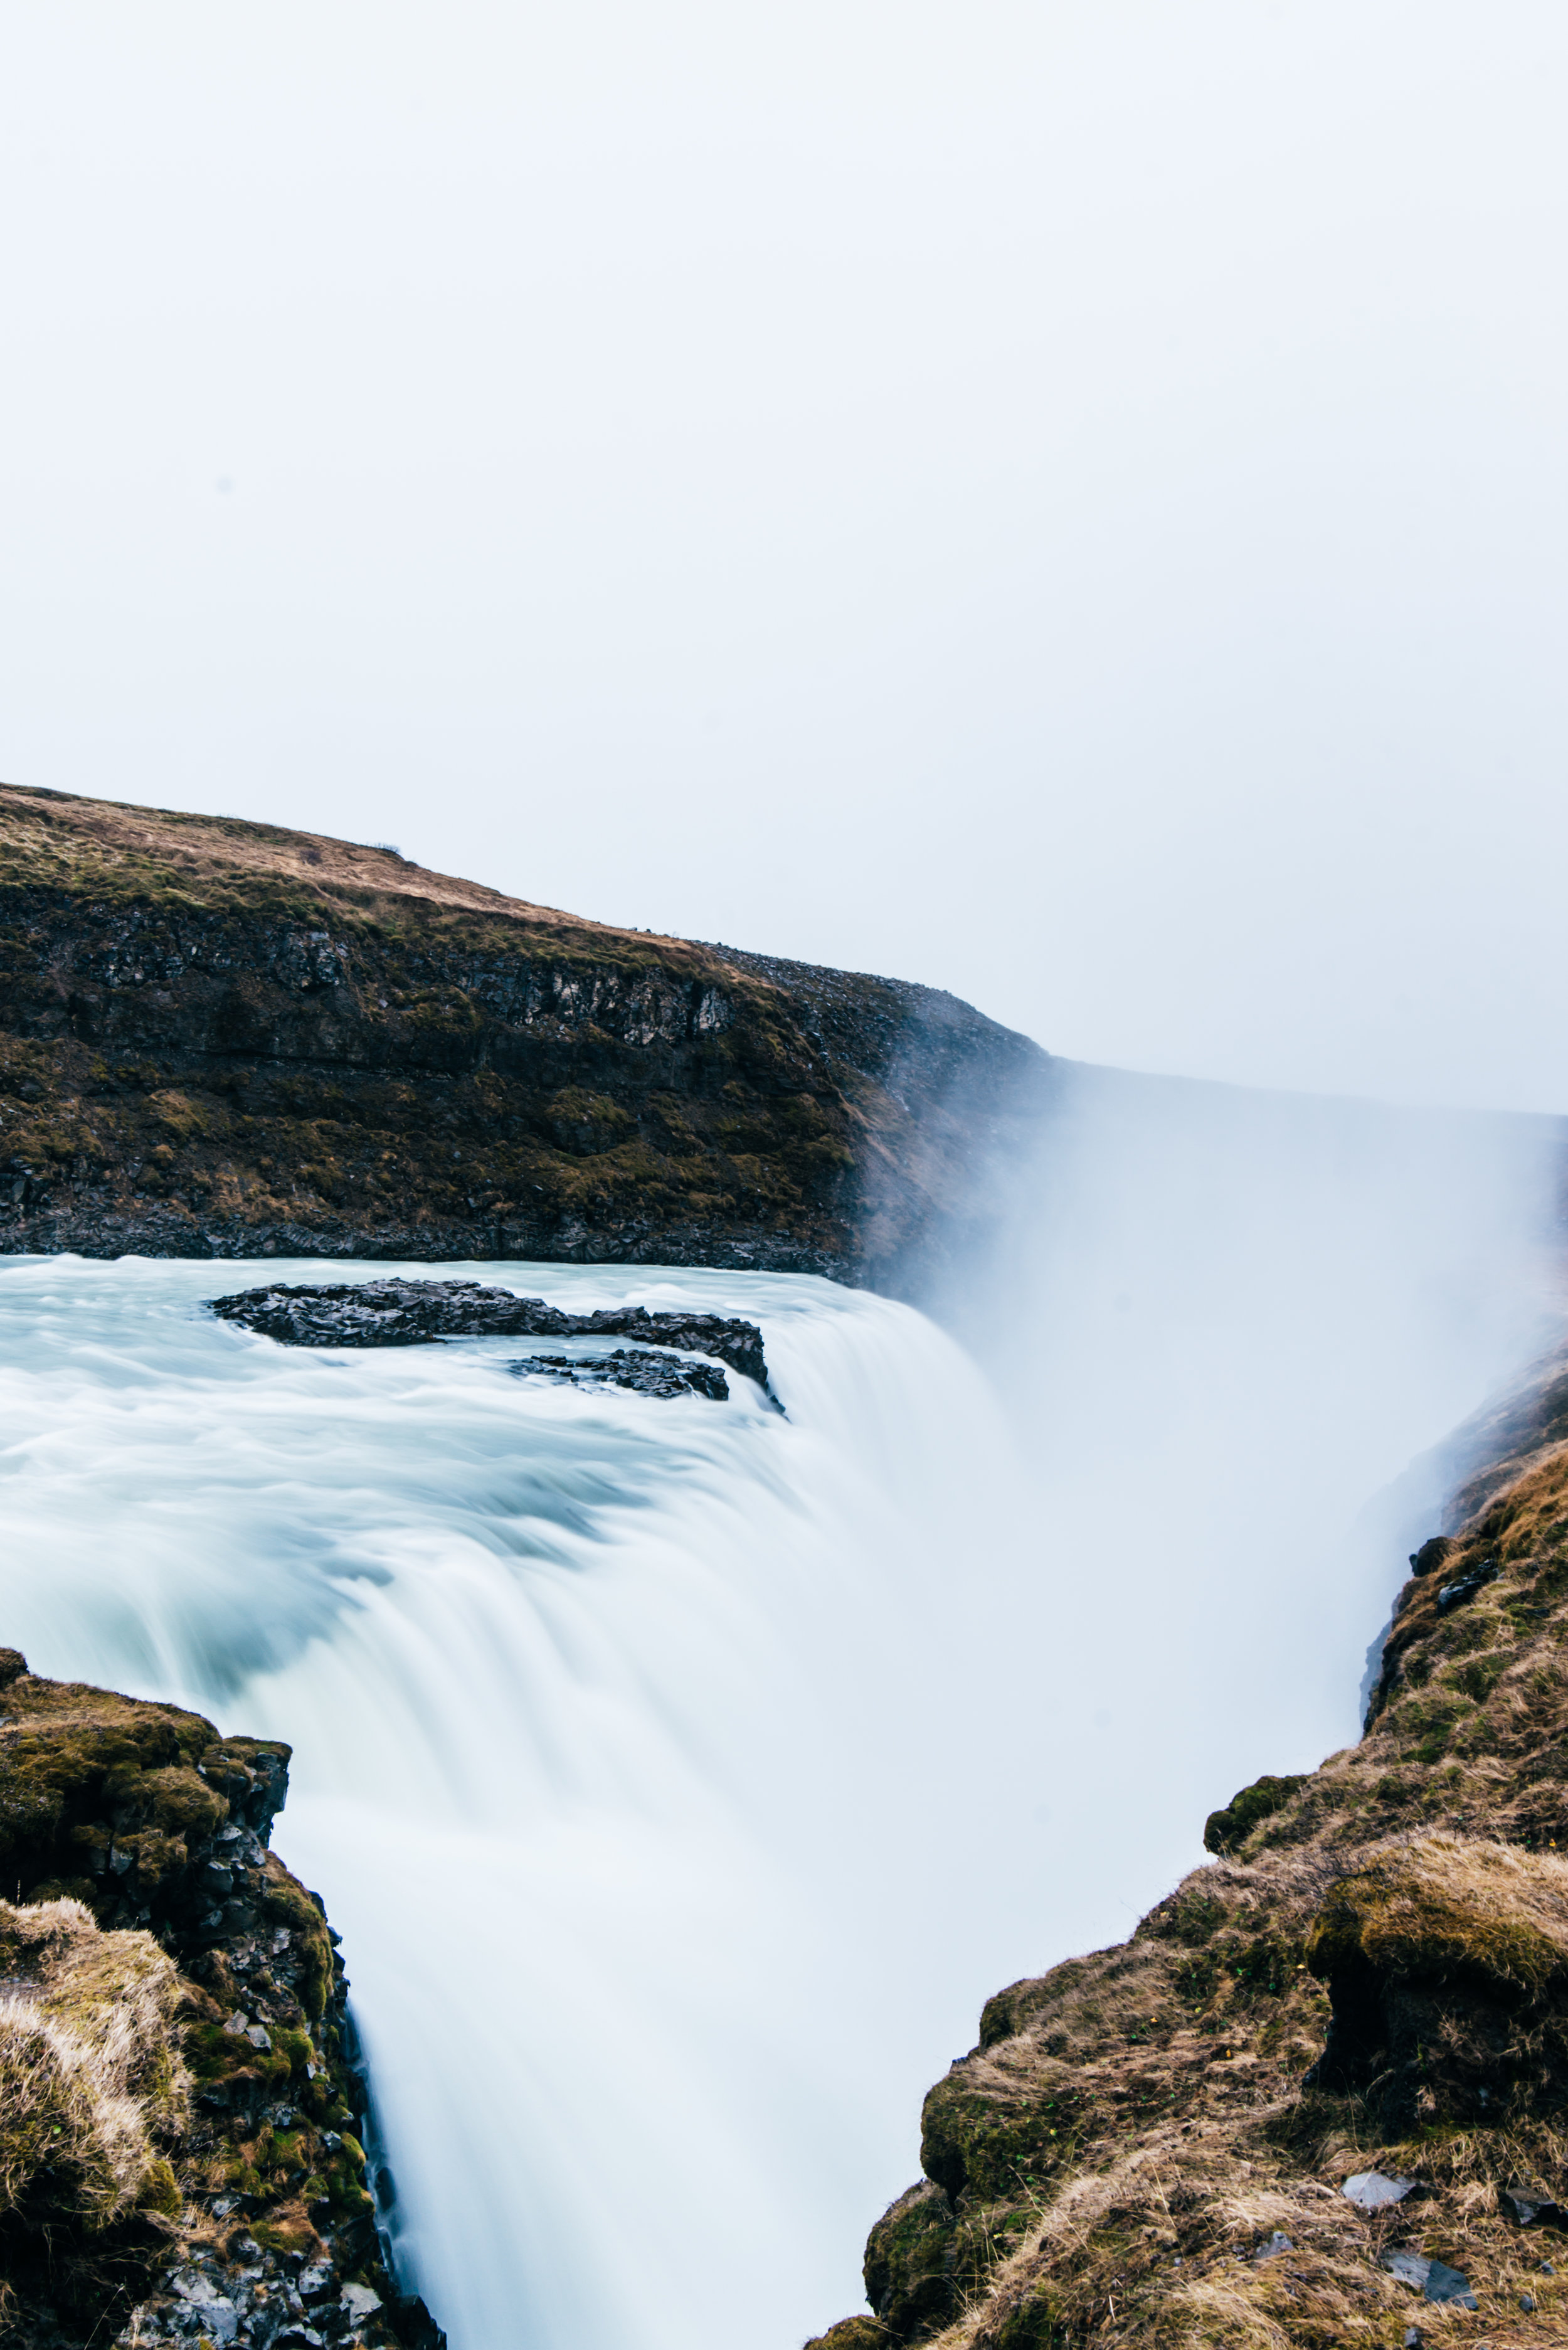 Our last foss, Gullfoss. This was just a tiny part of the HUGE WATERFALL.